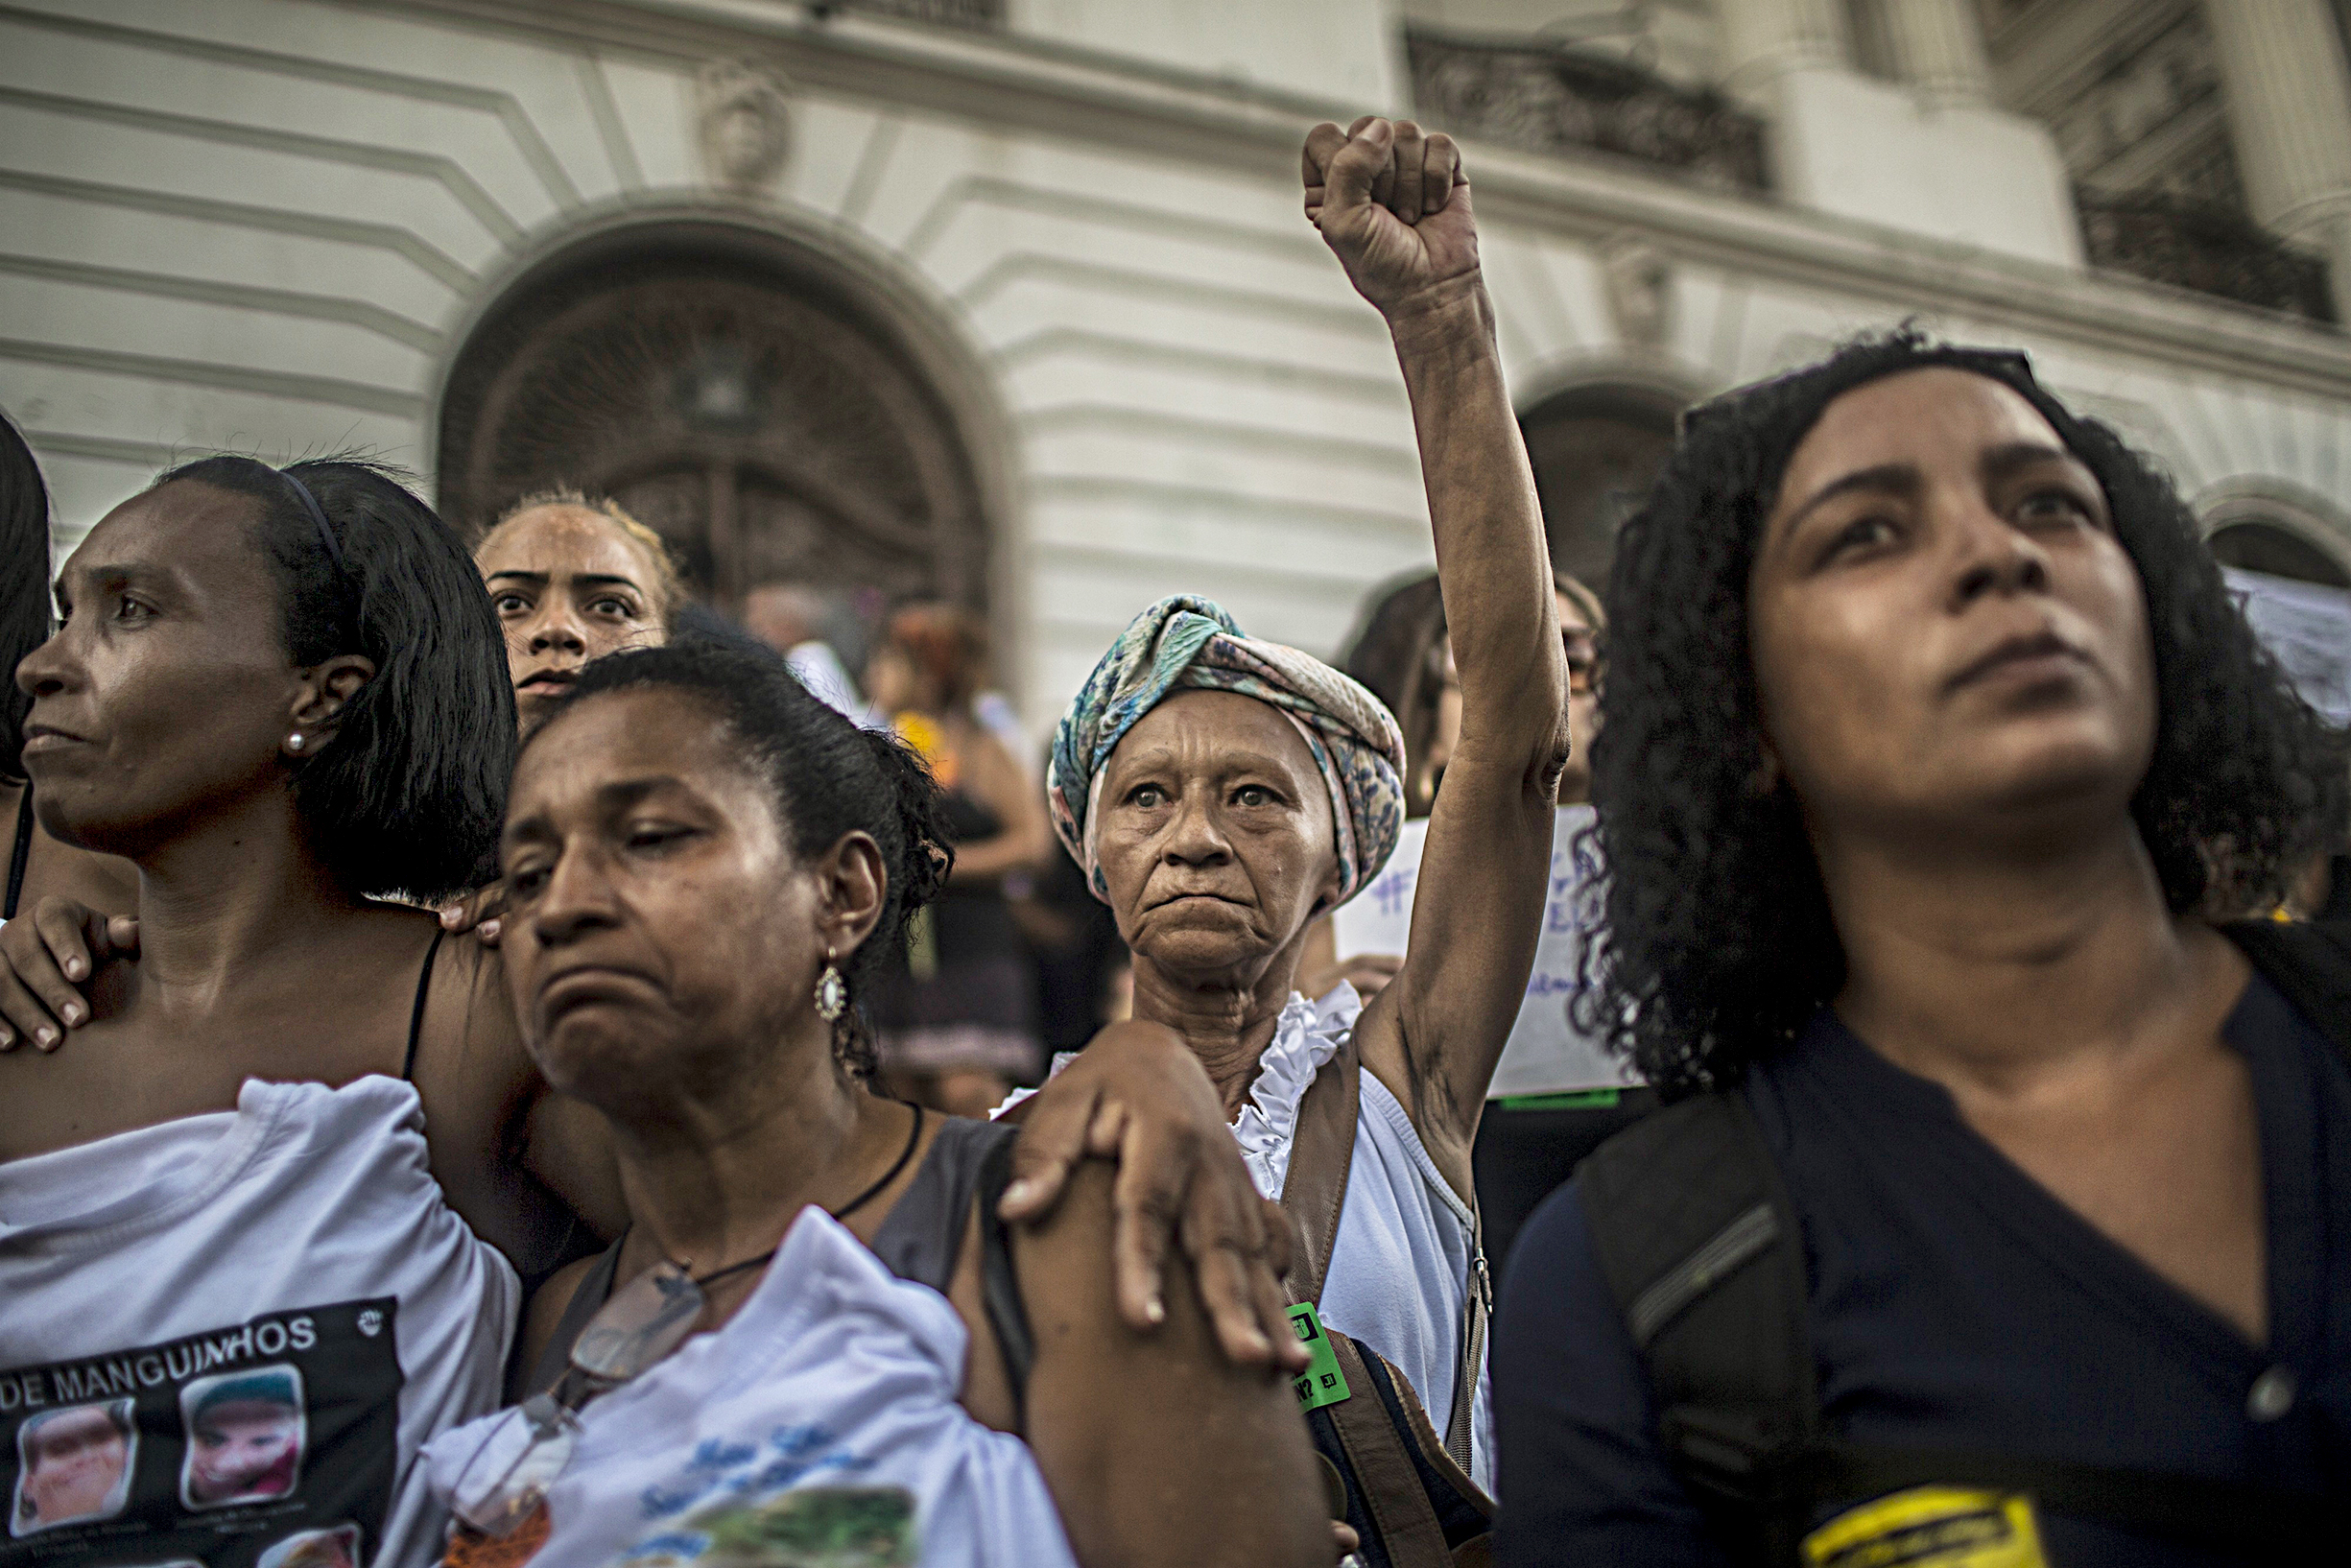 Crowds react as the coffin of fast-rising politician Marielle Franco is carried by in Rio de Janeiro